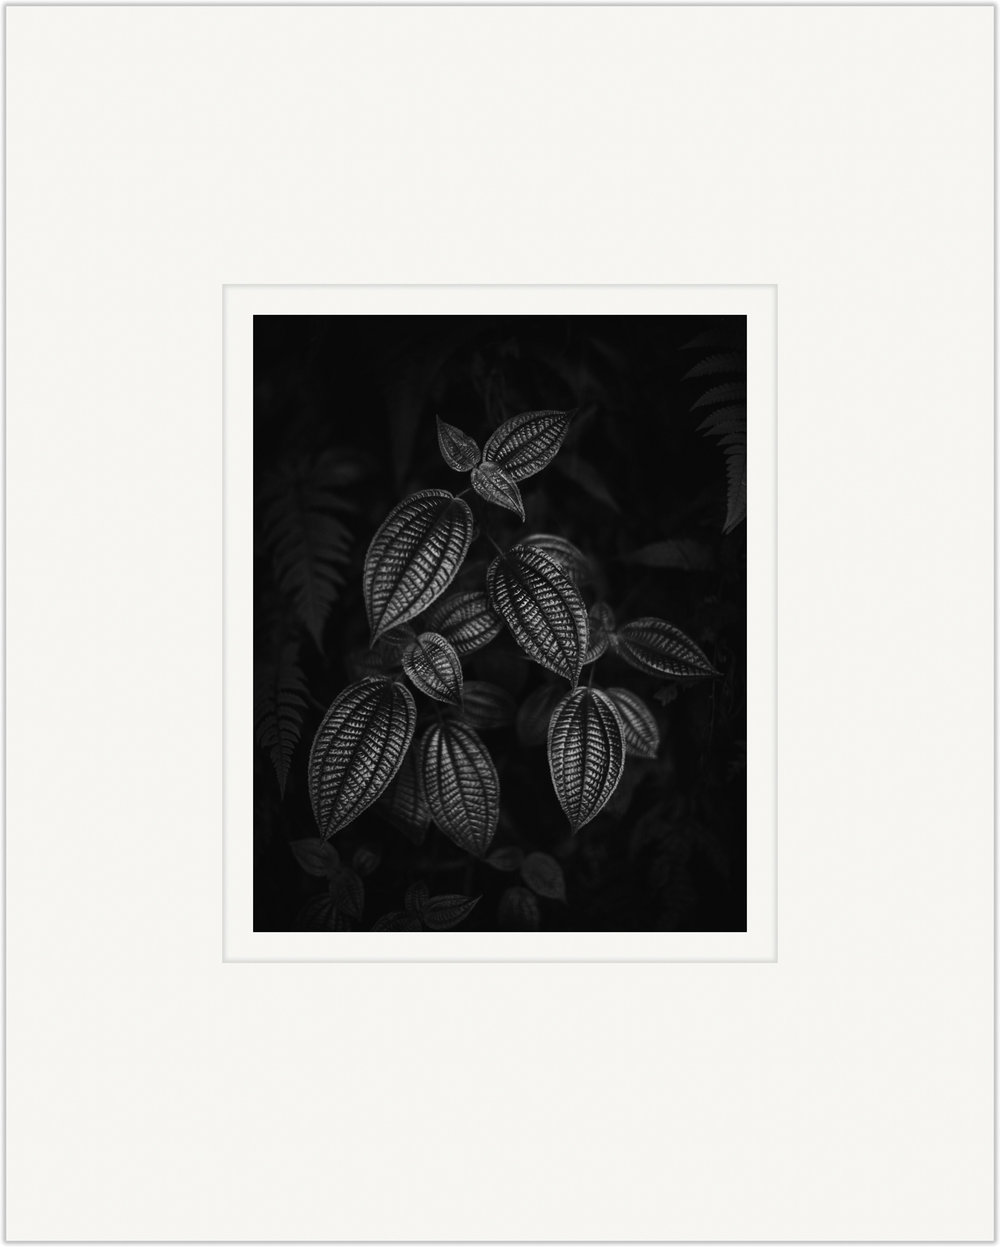 Foliis Candentis   20cm x 25cm Photo Paper Limited Edition of 99   IDR 399,000